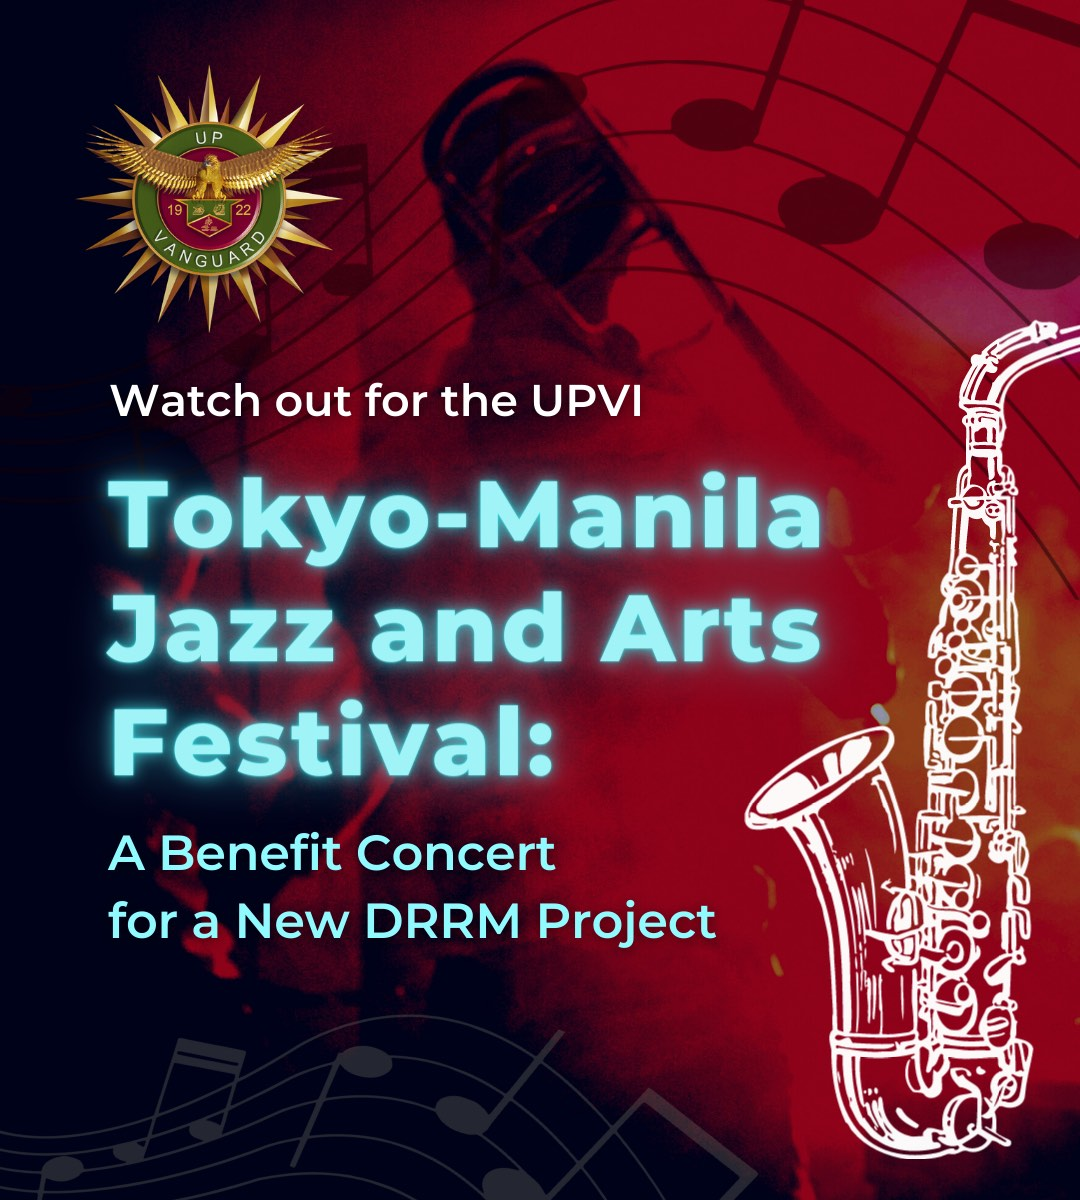 Tokyo-Manila Jazz and Arts Festival: A Benefit Concert for a New DRRM Project